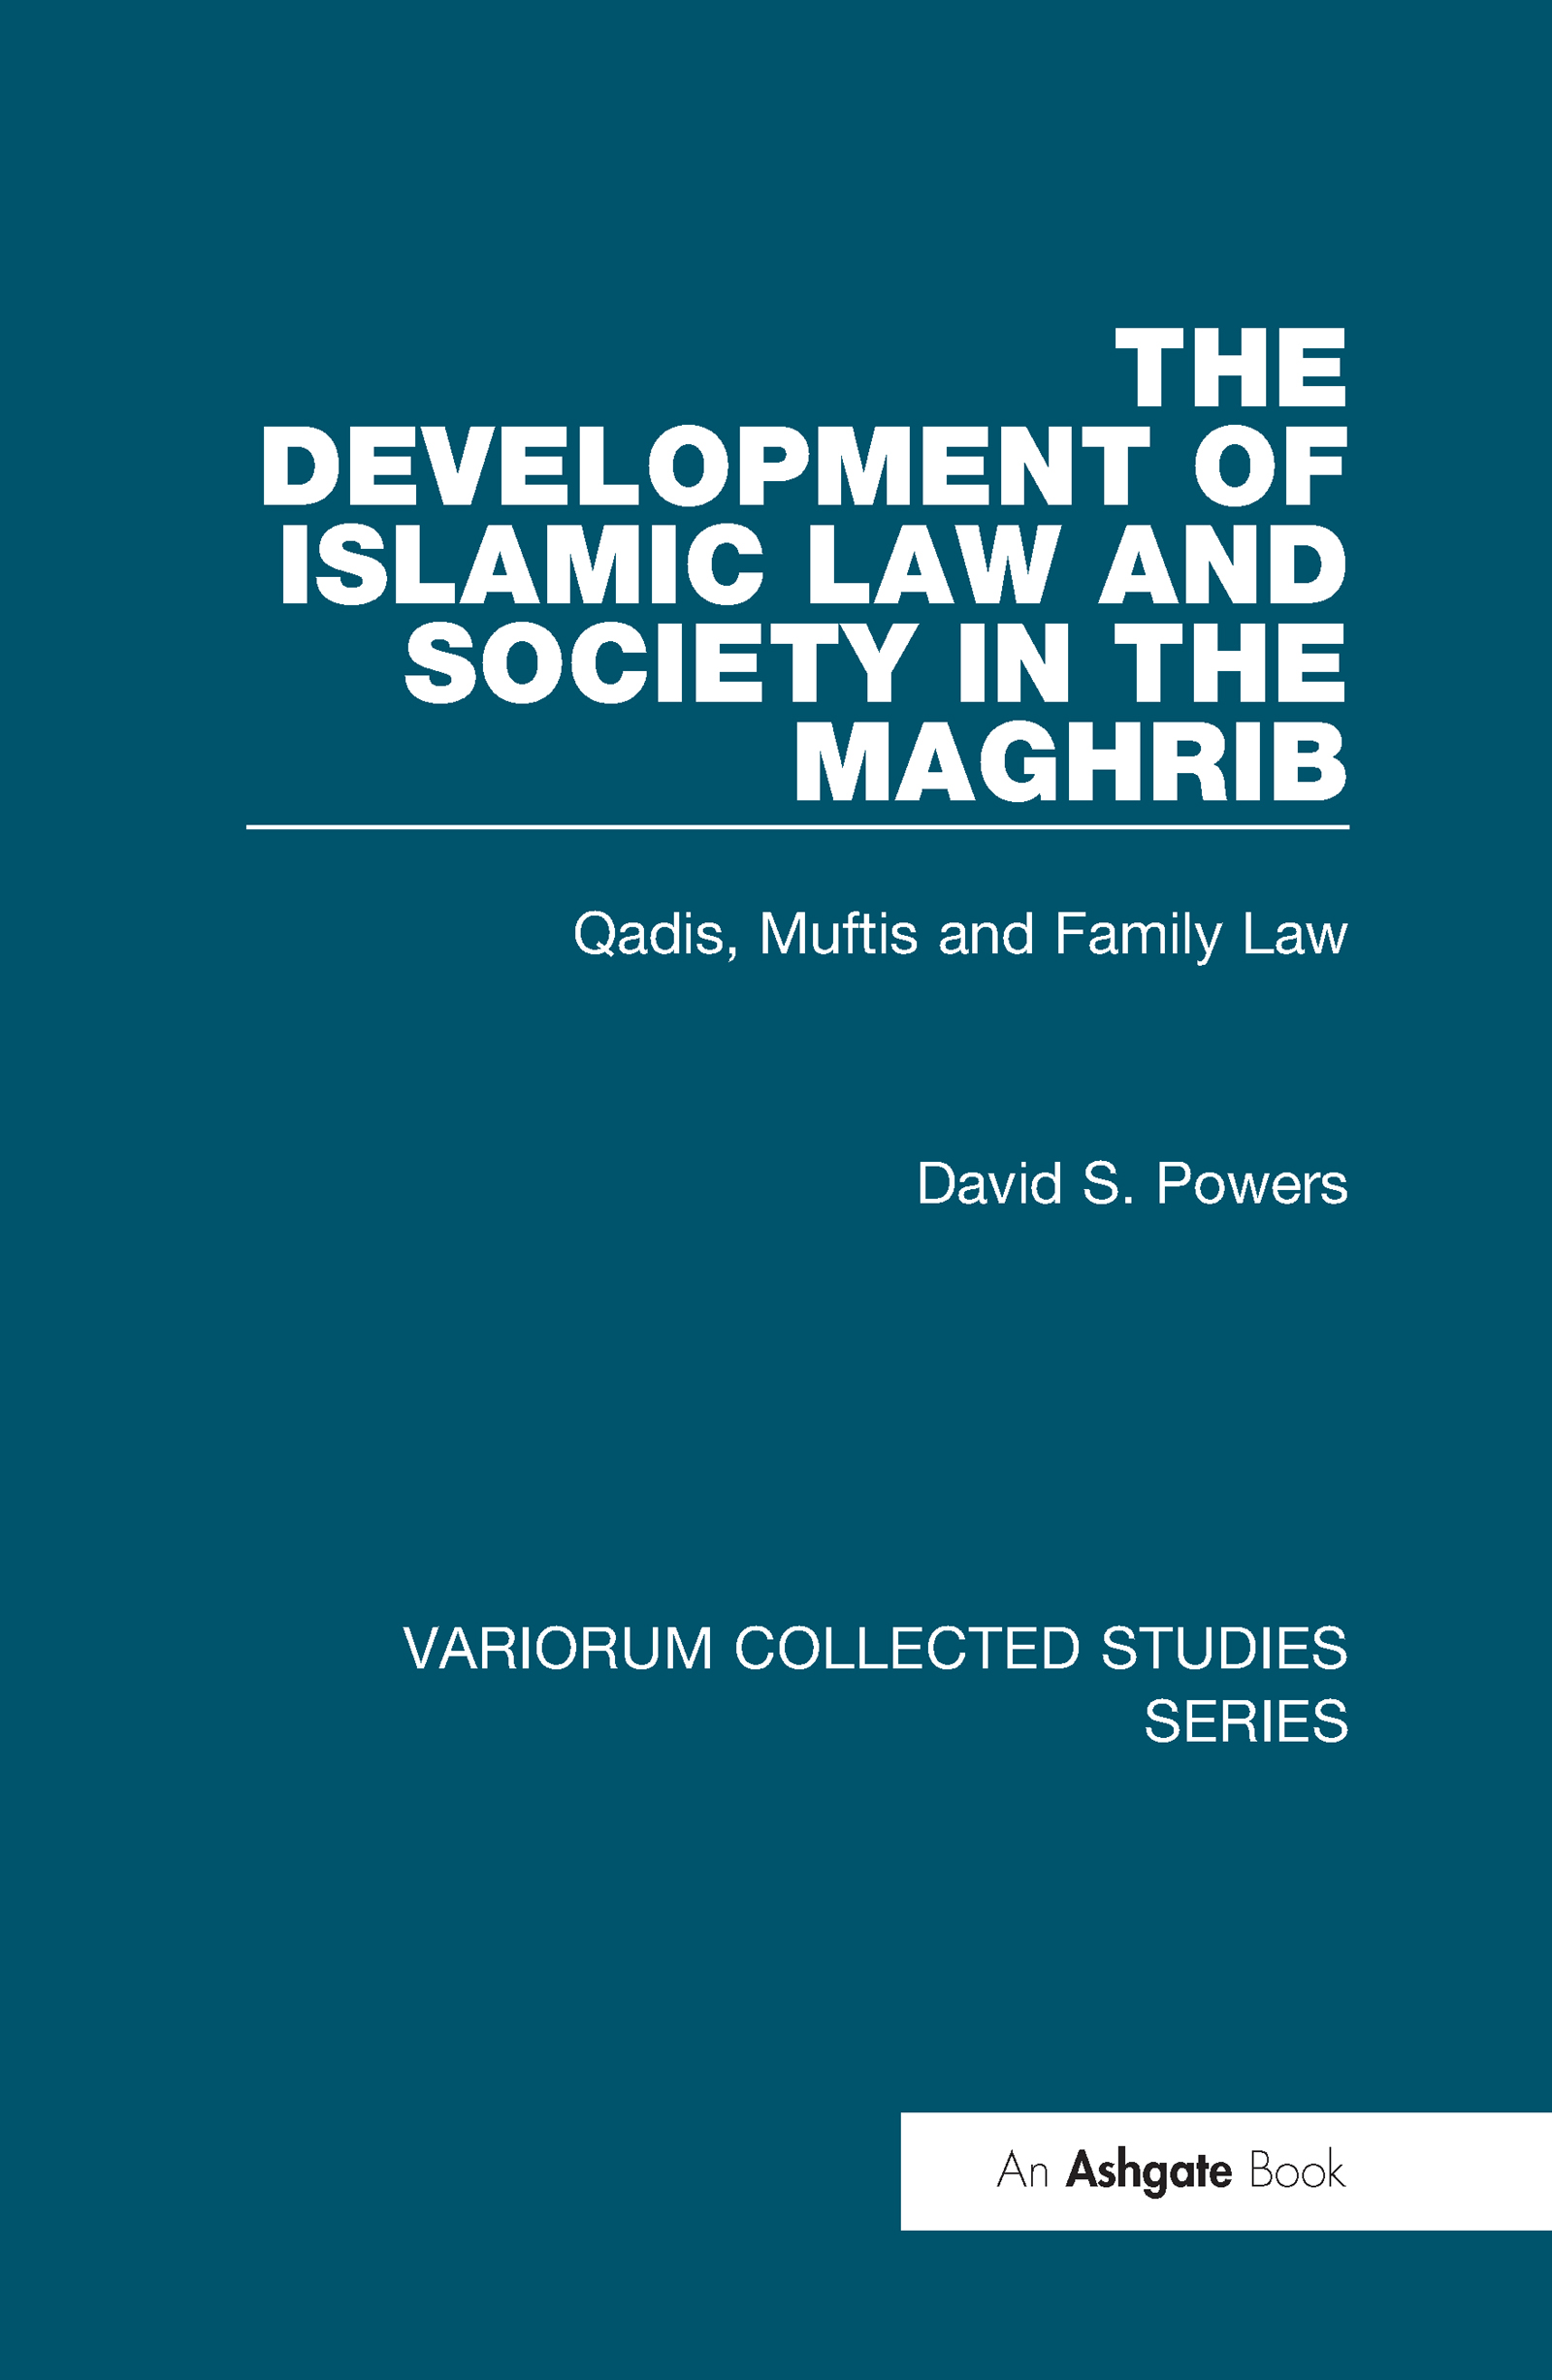 The Development of Islamic Law and Society in the Maghrib: Qadis, Muftis and Family Law book cover